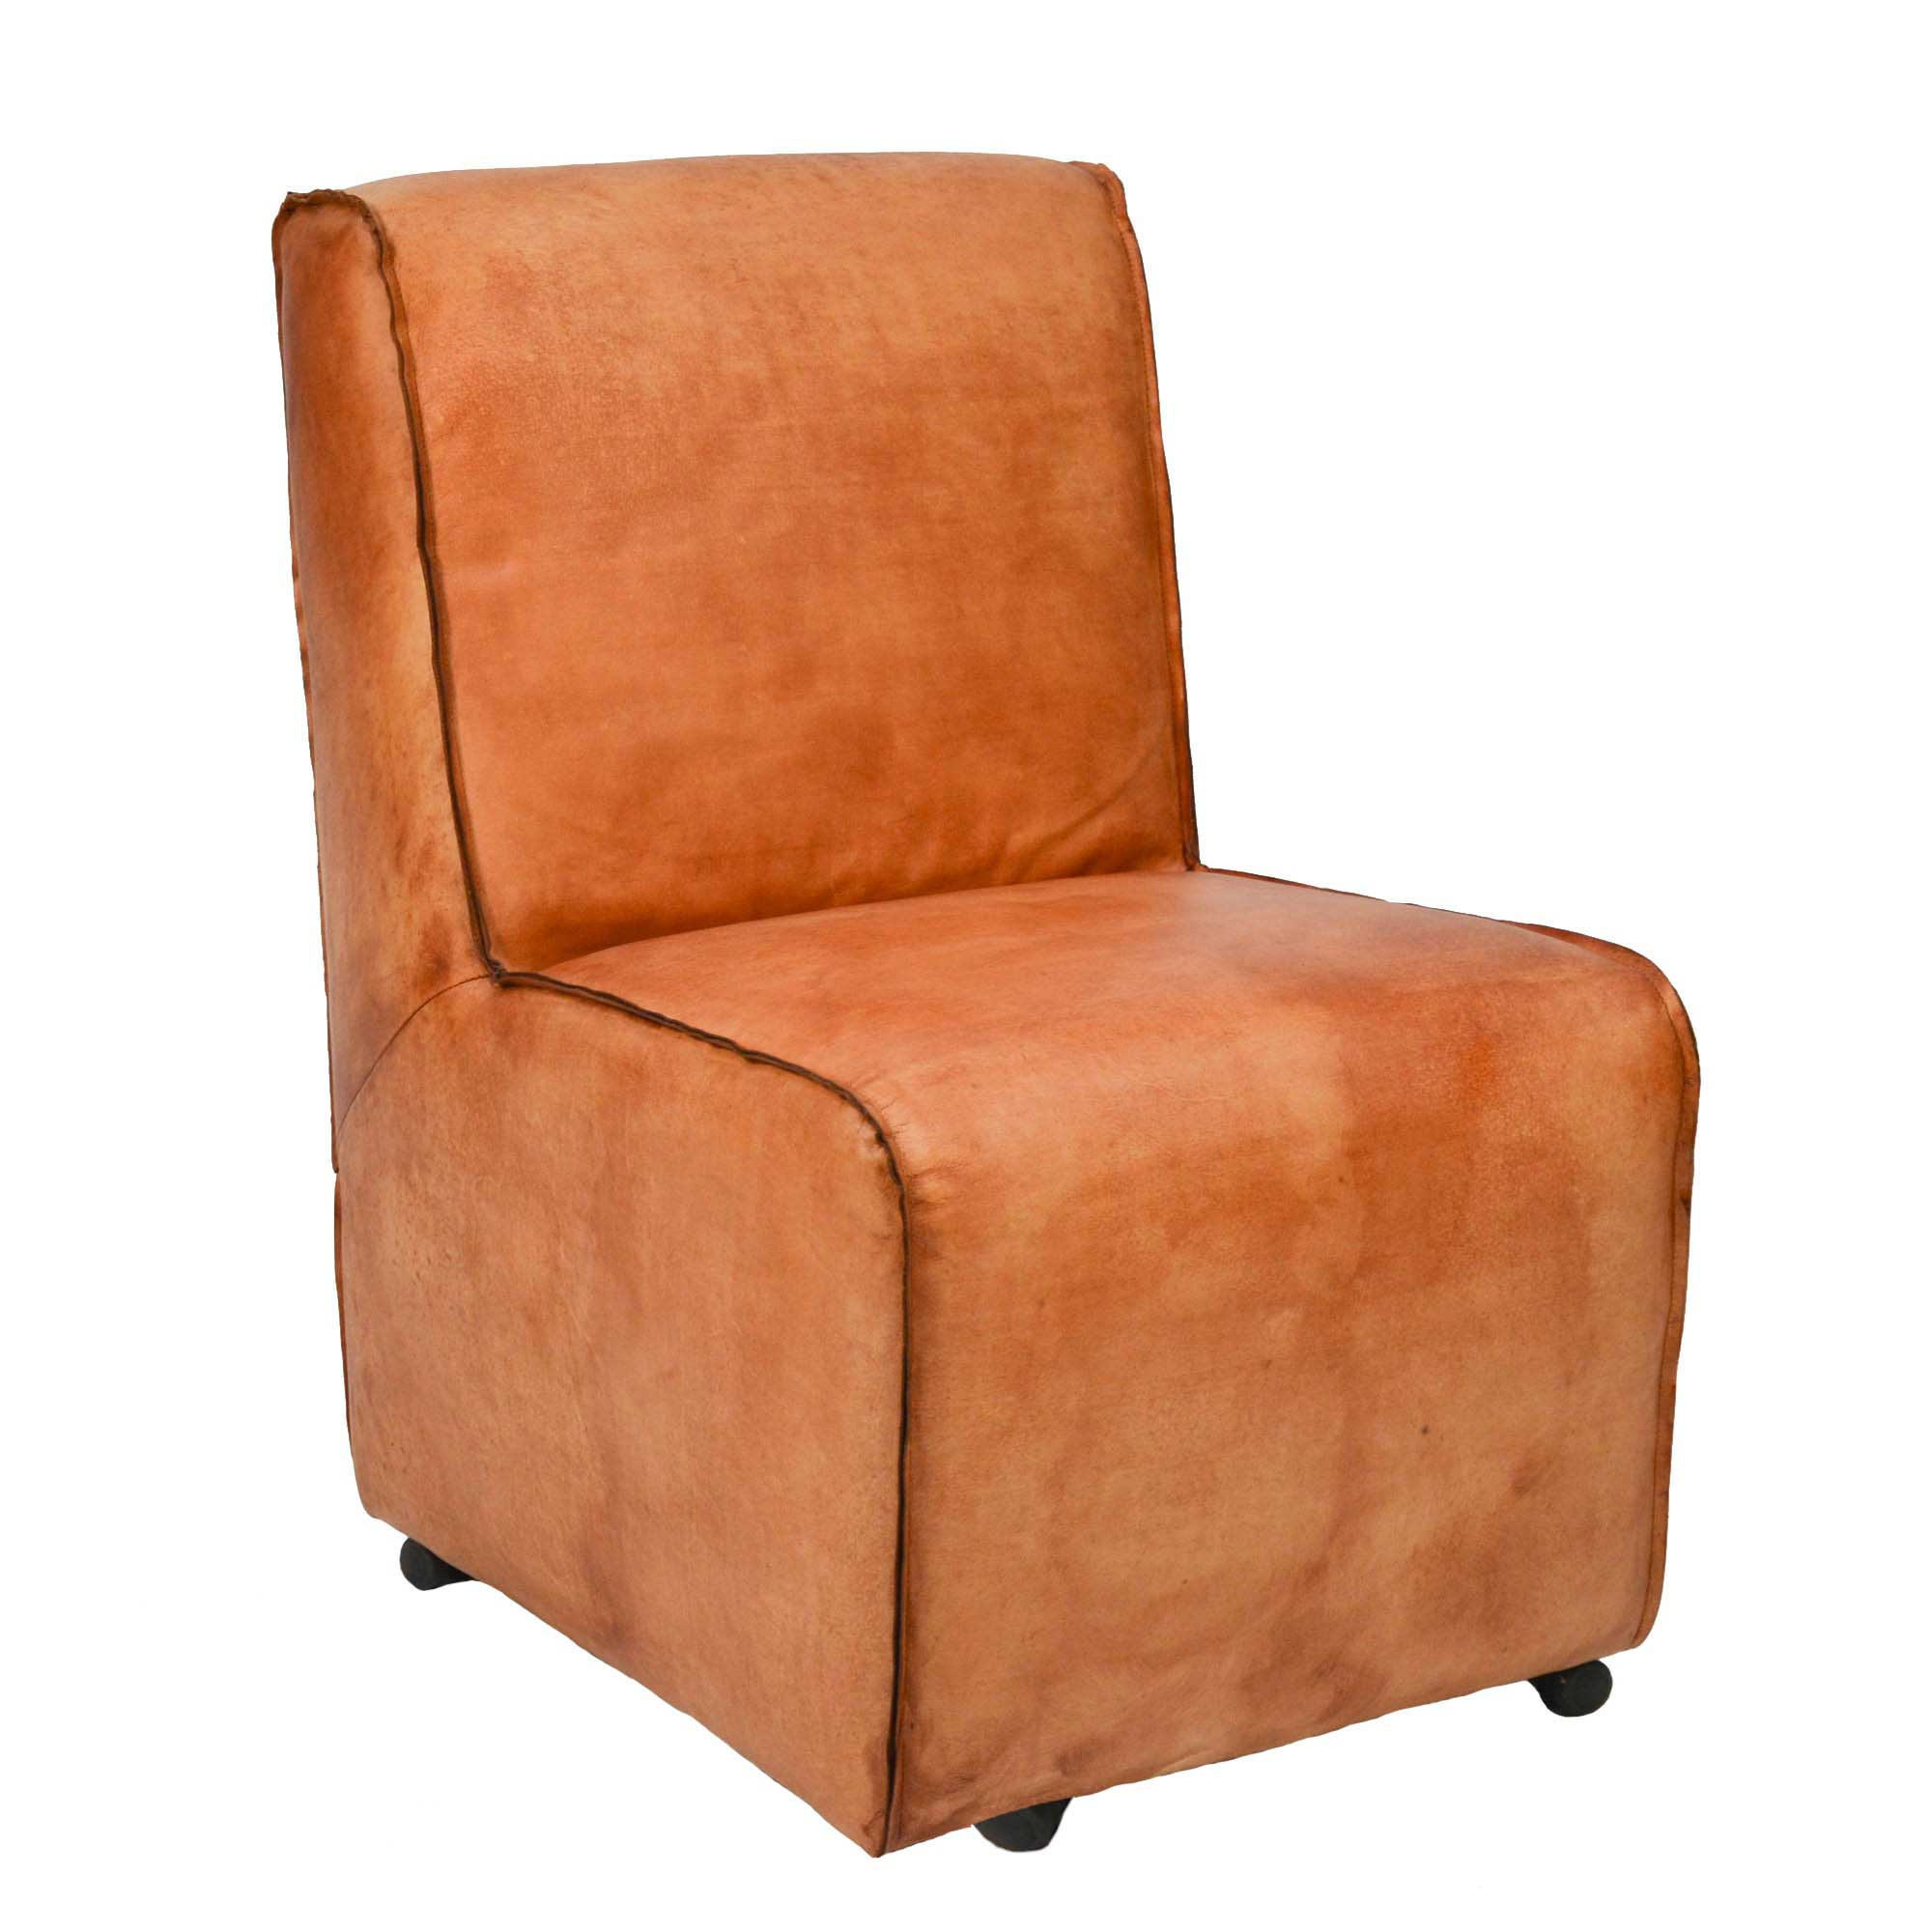 Lounge sessel braxton livior m bel im industrie design for Sessel auf rollen leder